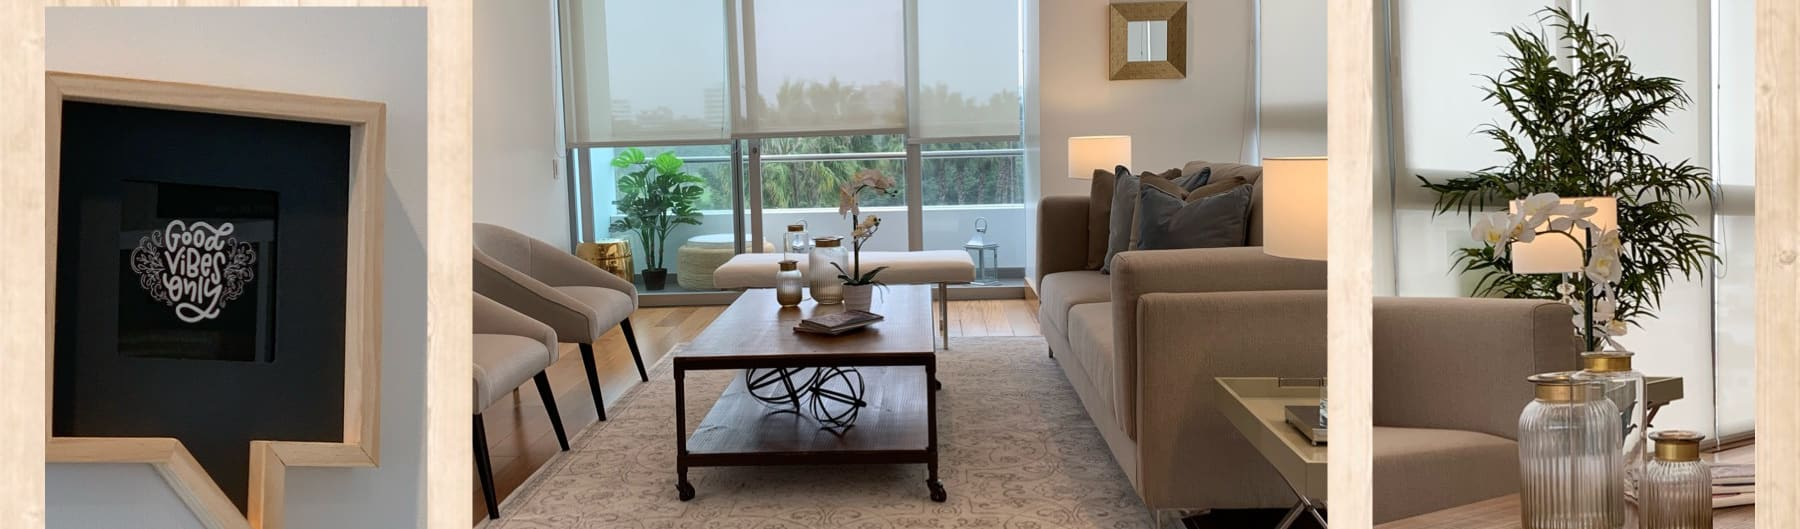 Home Staging & Co.